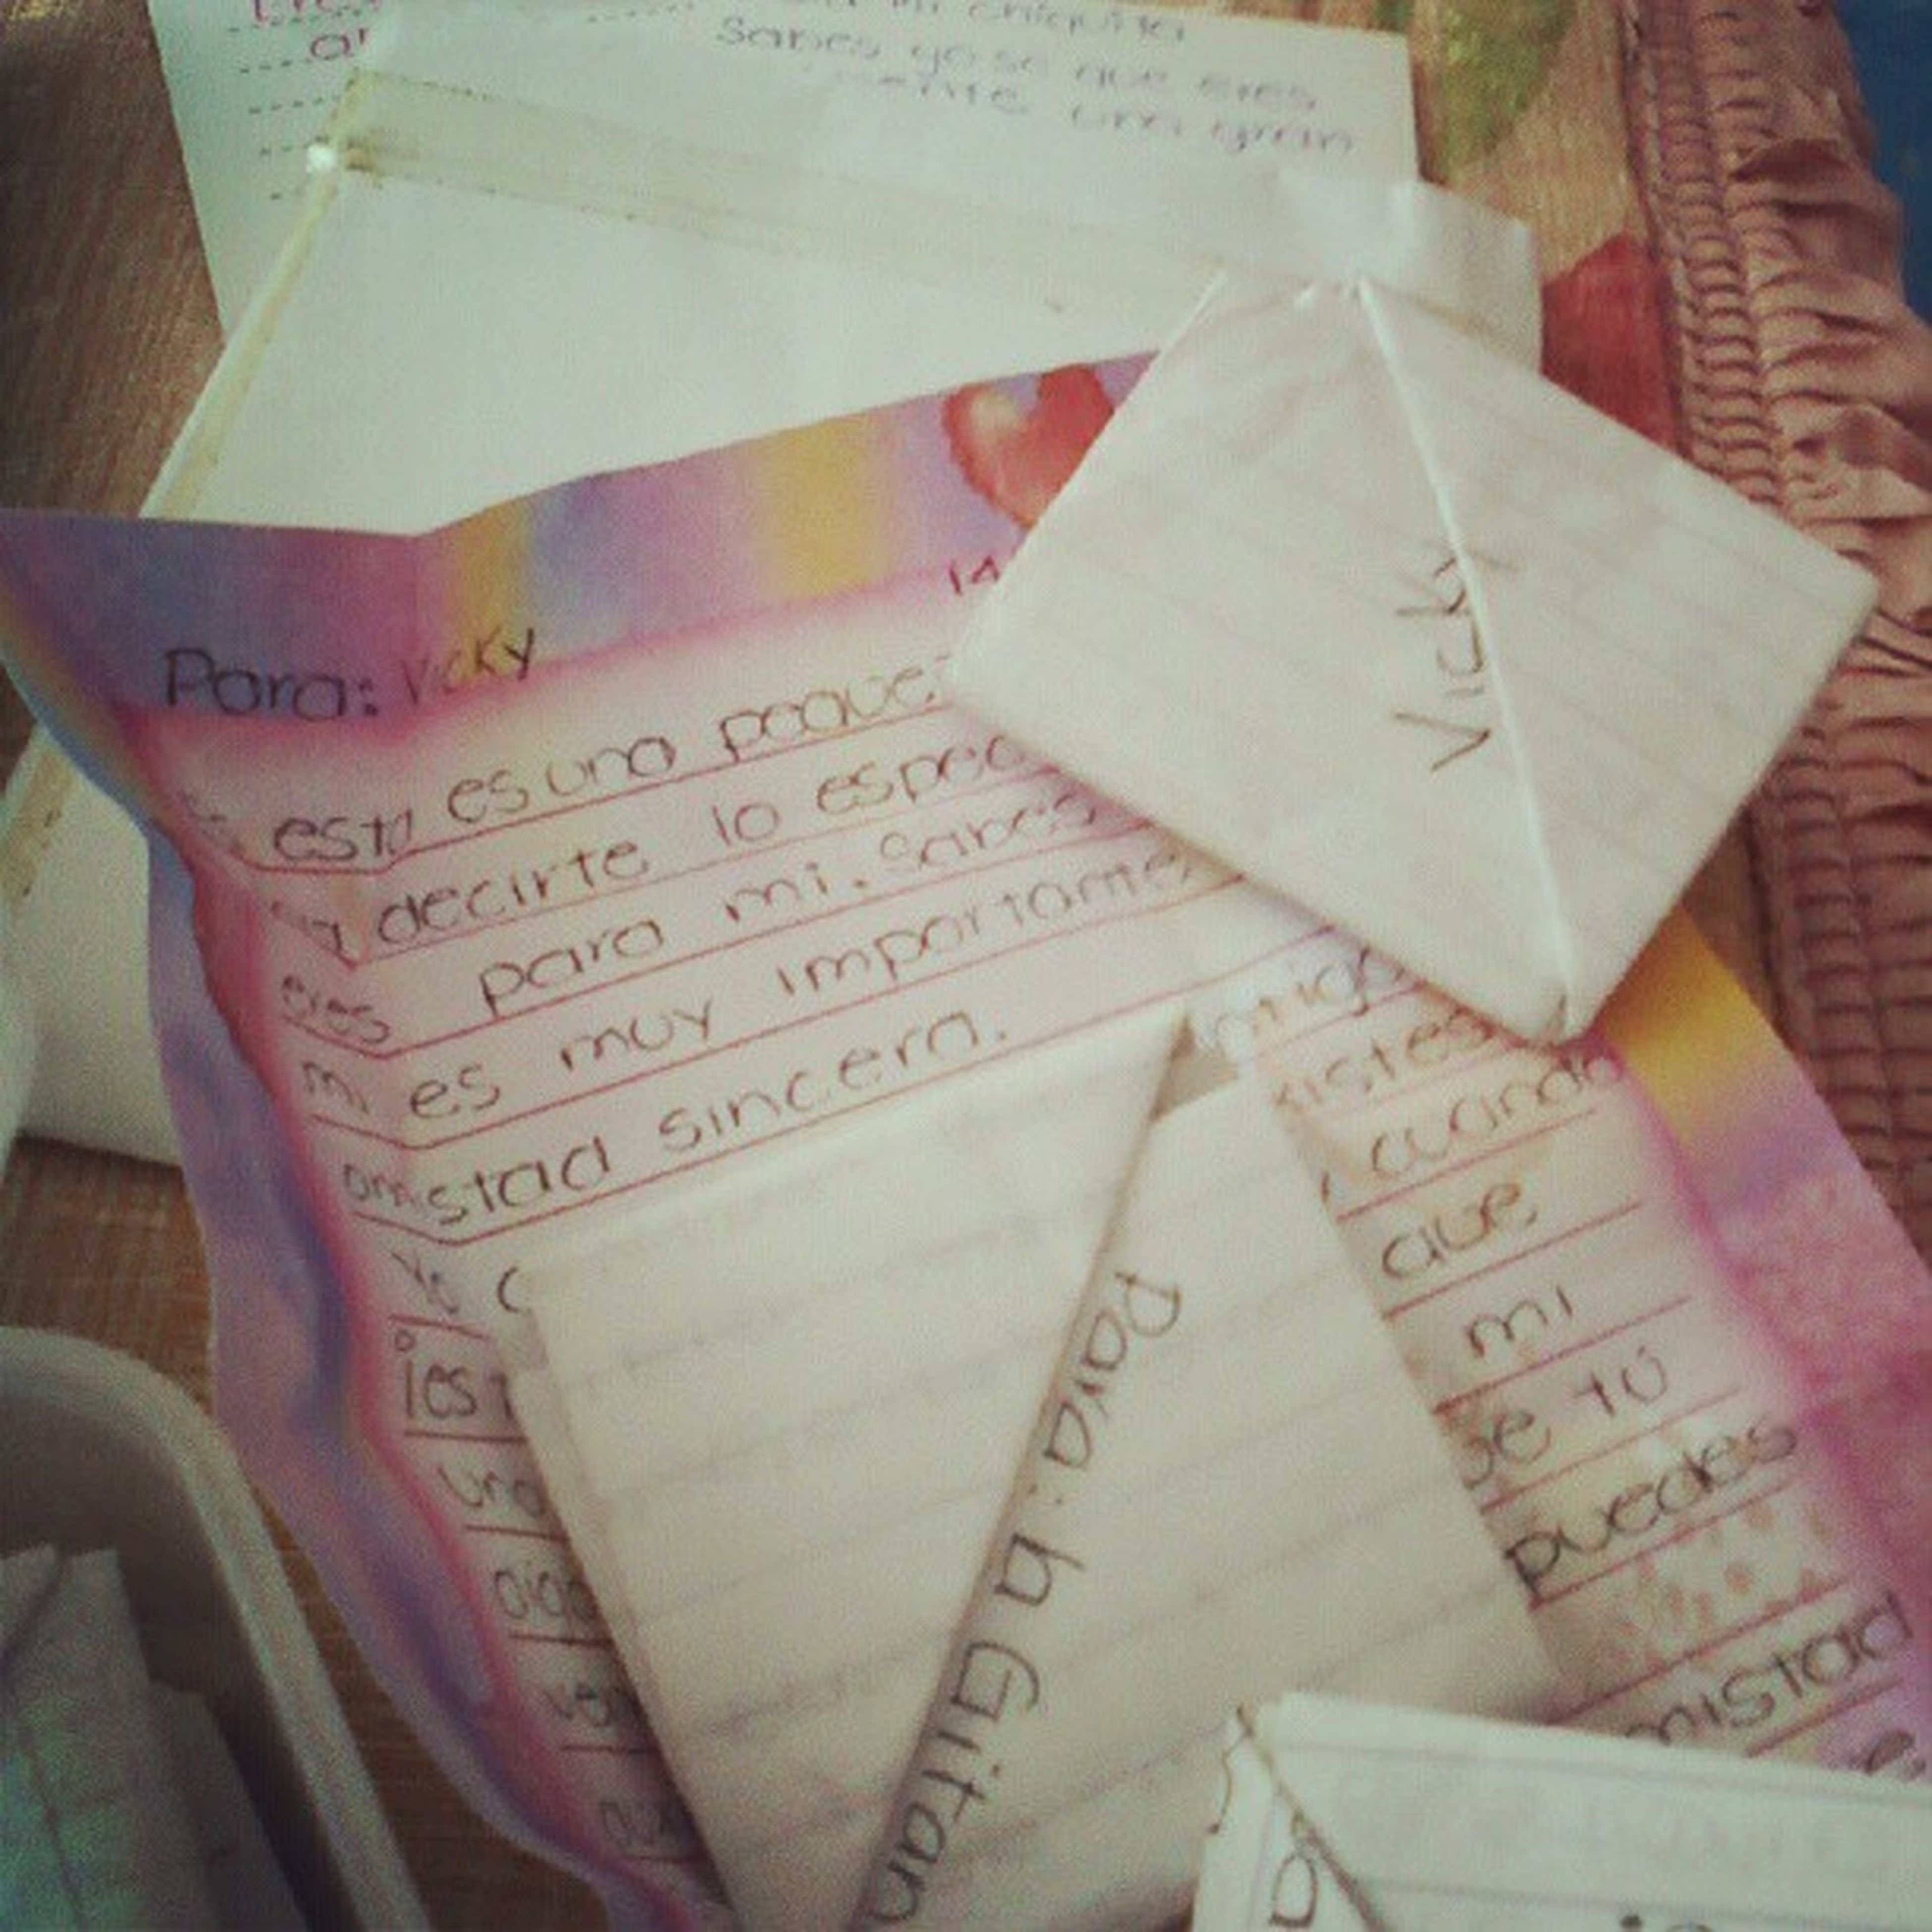 text, indoors, book, western script, paper, communication, education, high angle view, close-up, still life, non-western script, variation, table, large group of objects, handwriting, no people, choice, open, learning, message